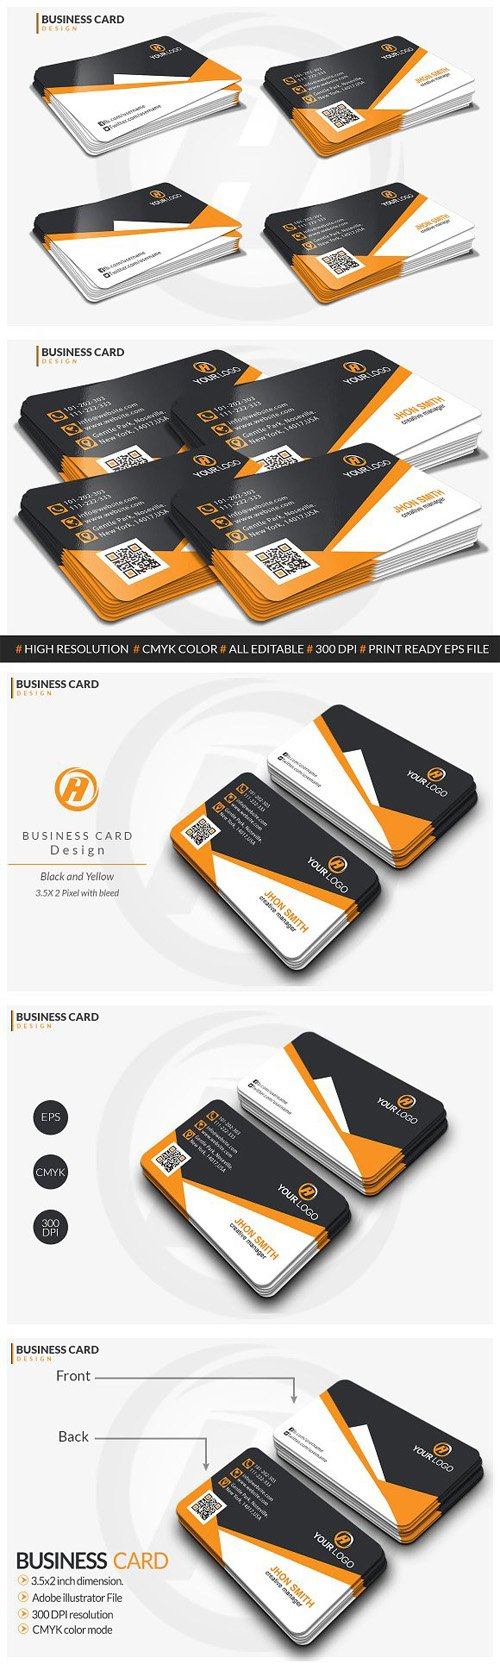 Corporate Business card design 1479501